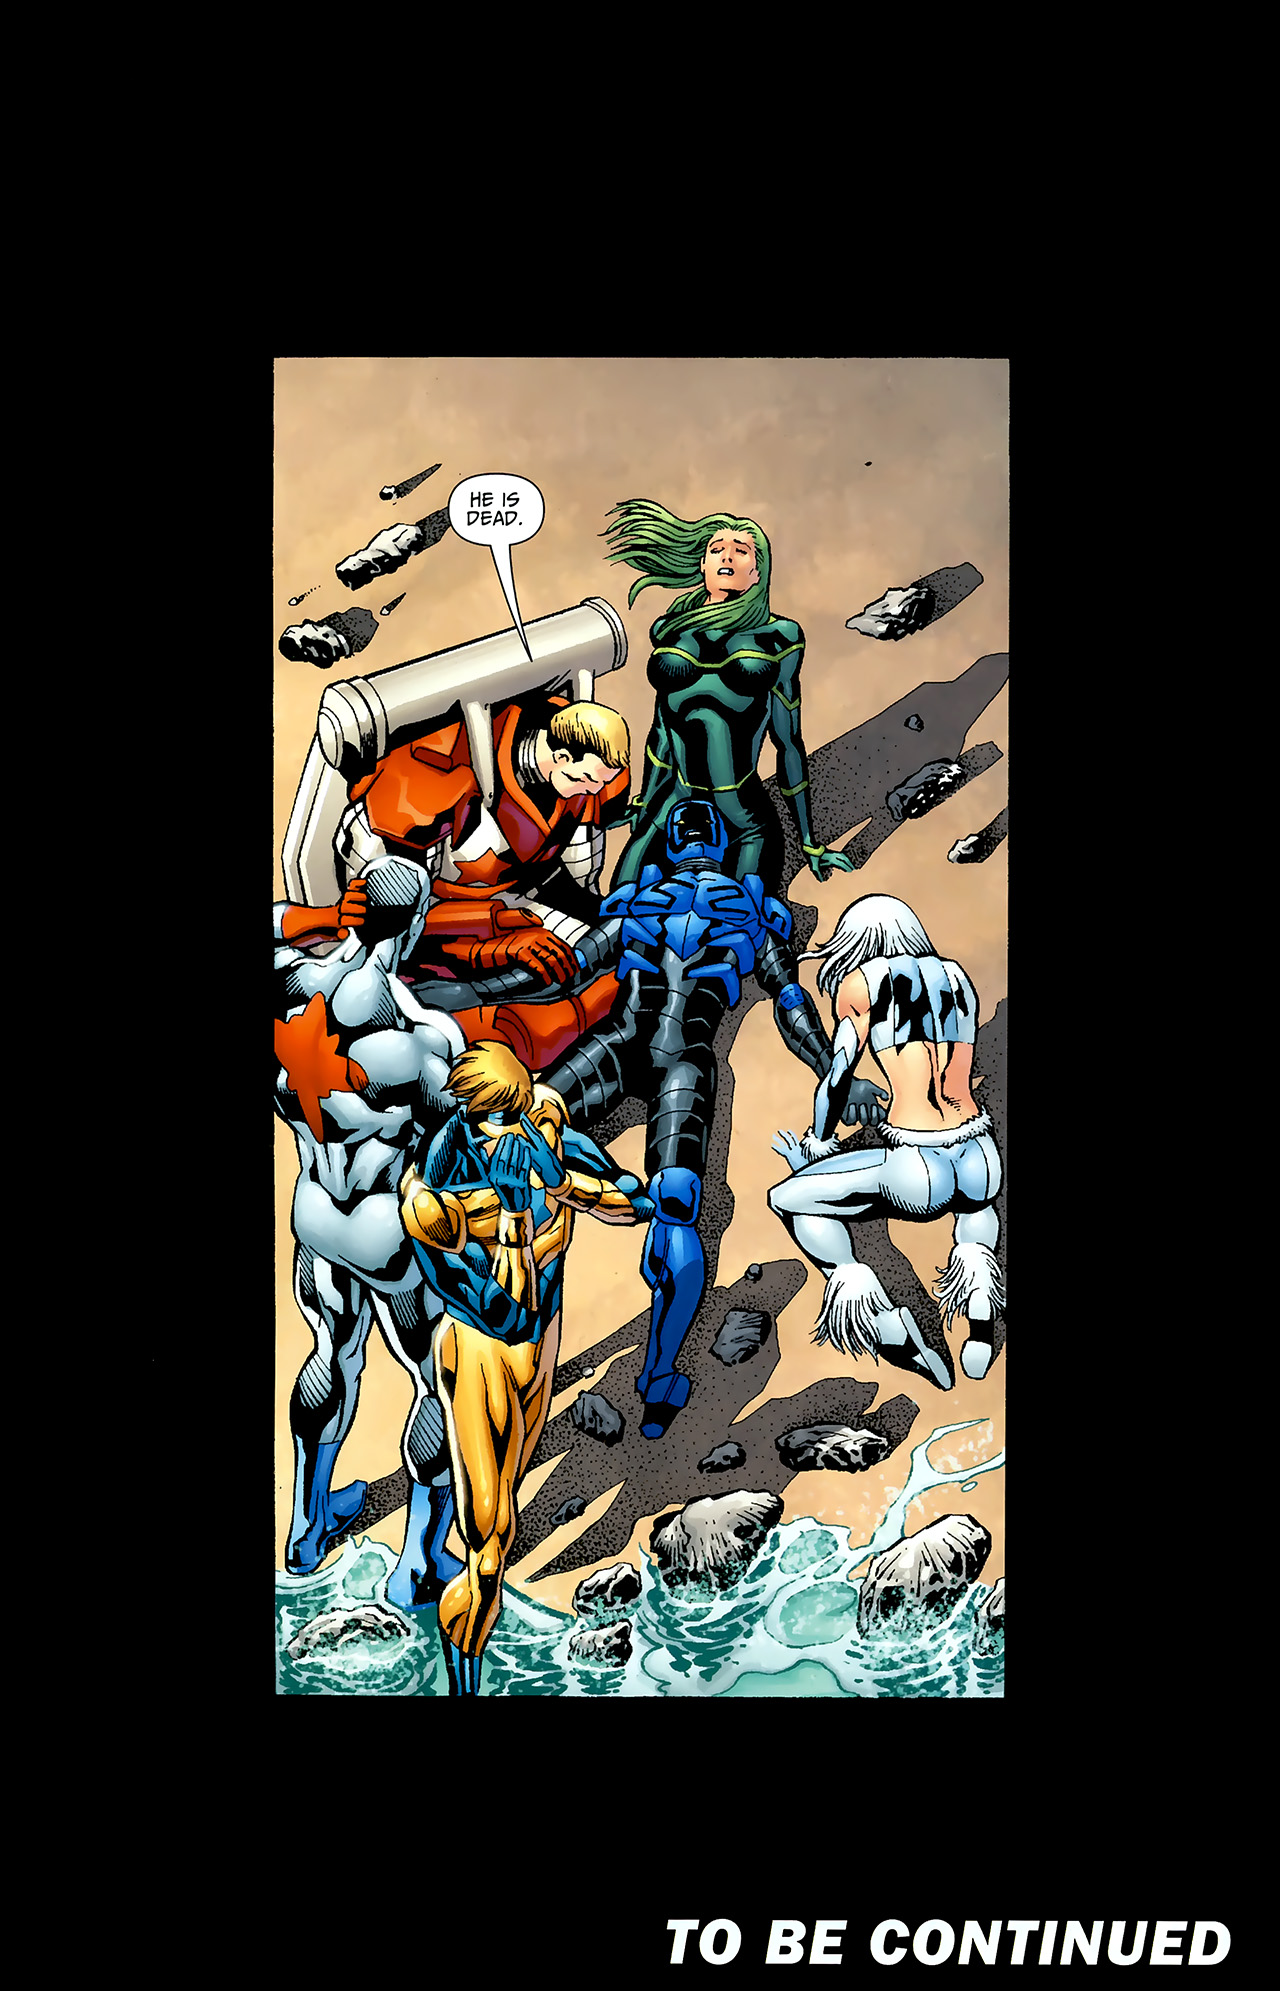 Read online Justice League: Generation Lost comic -  Issue #20 - 22